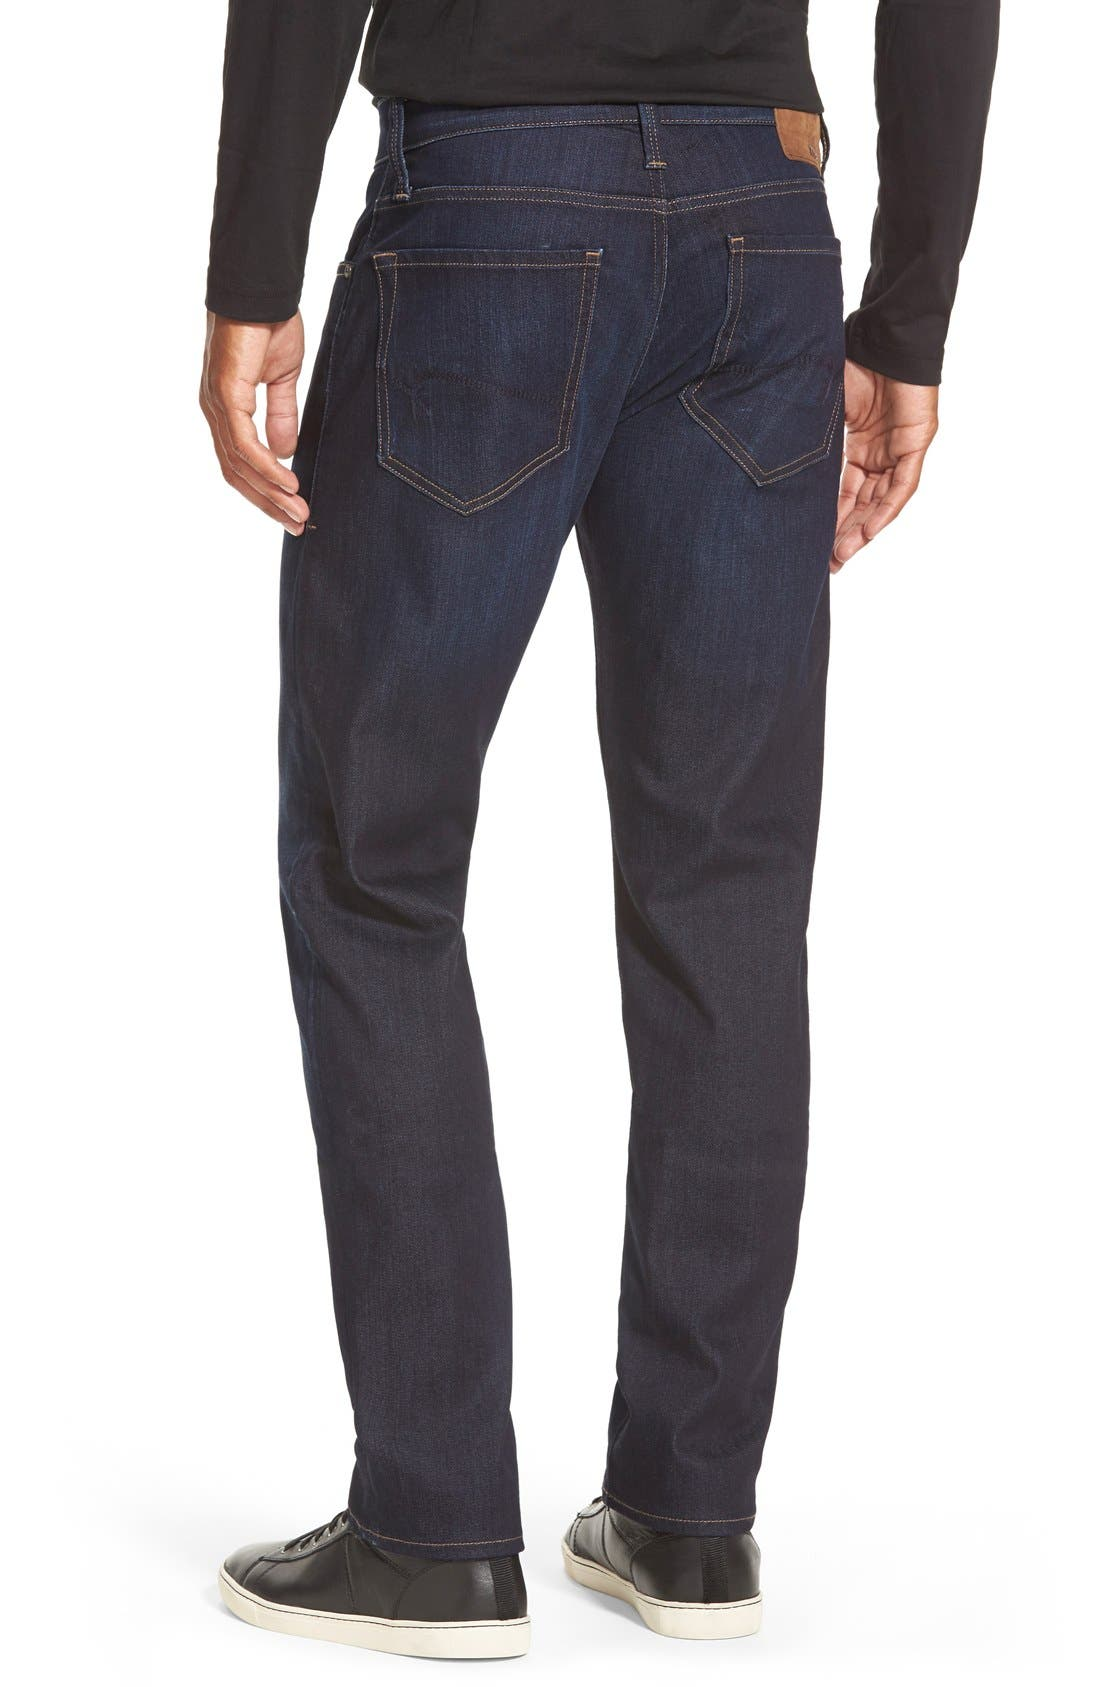 'Jake' Skinny Fit Jeans,                             Alternate thumbnail 3, color,                             RINSE BRUSHED WILLIAMSBURG